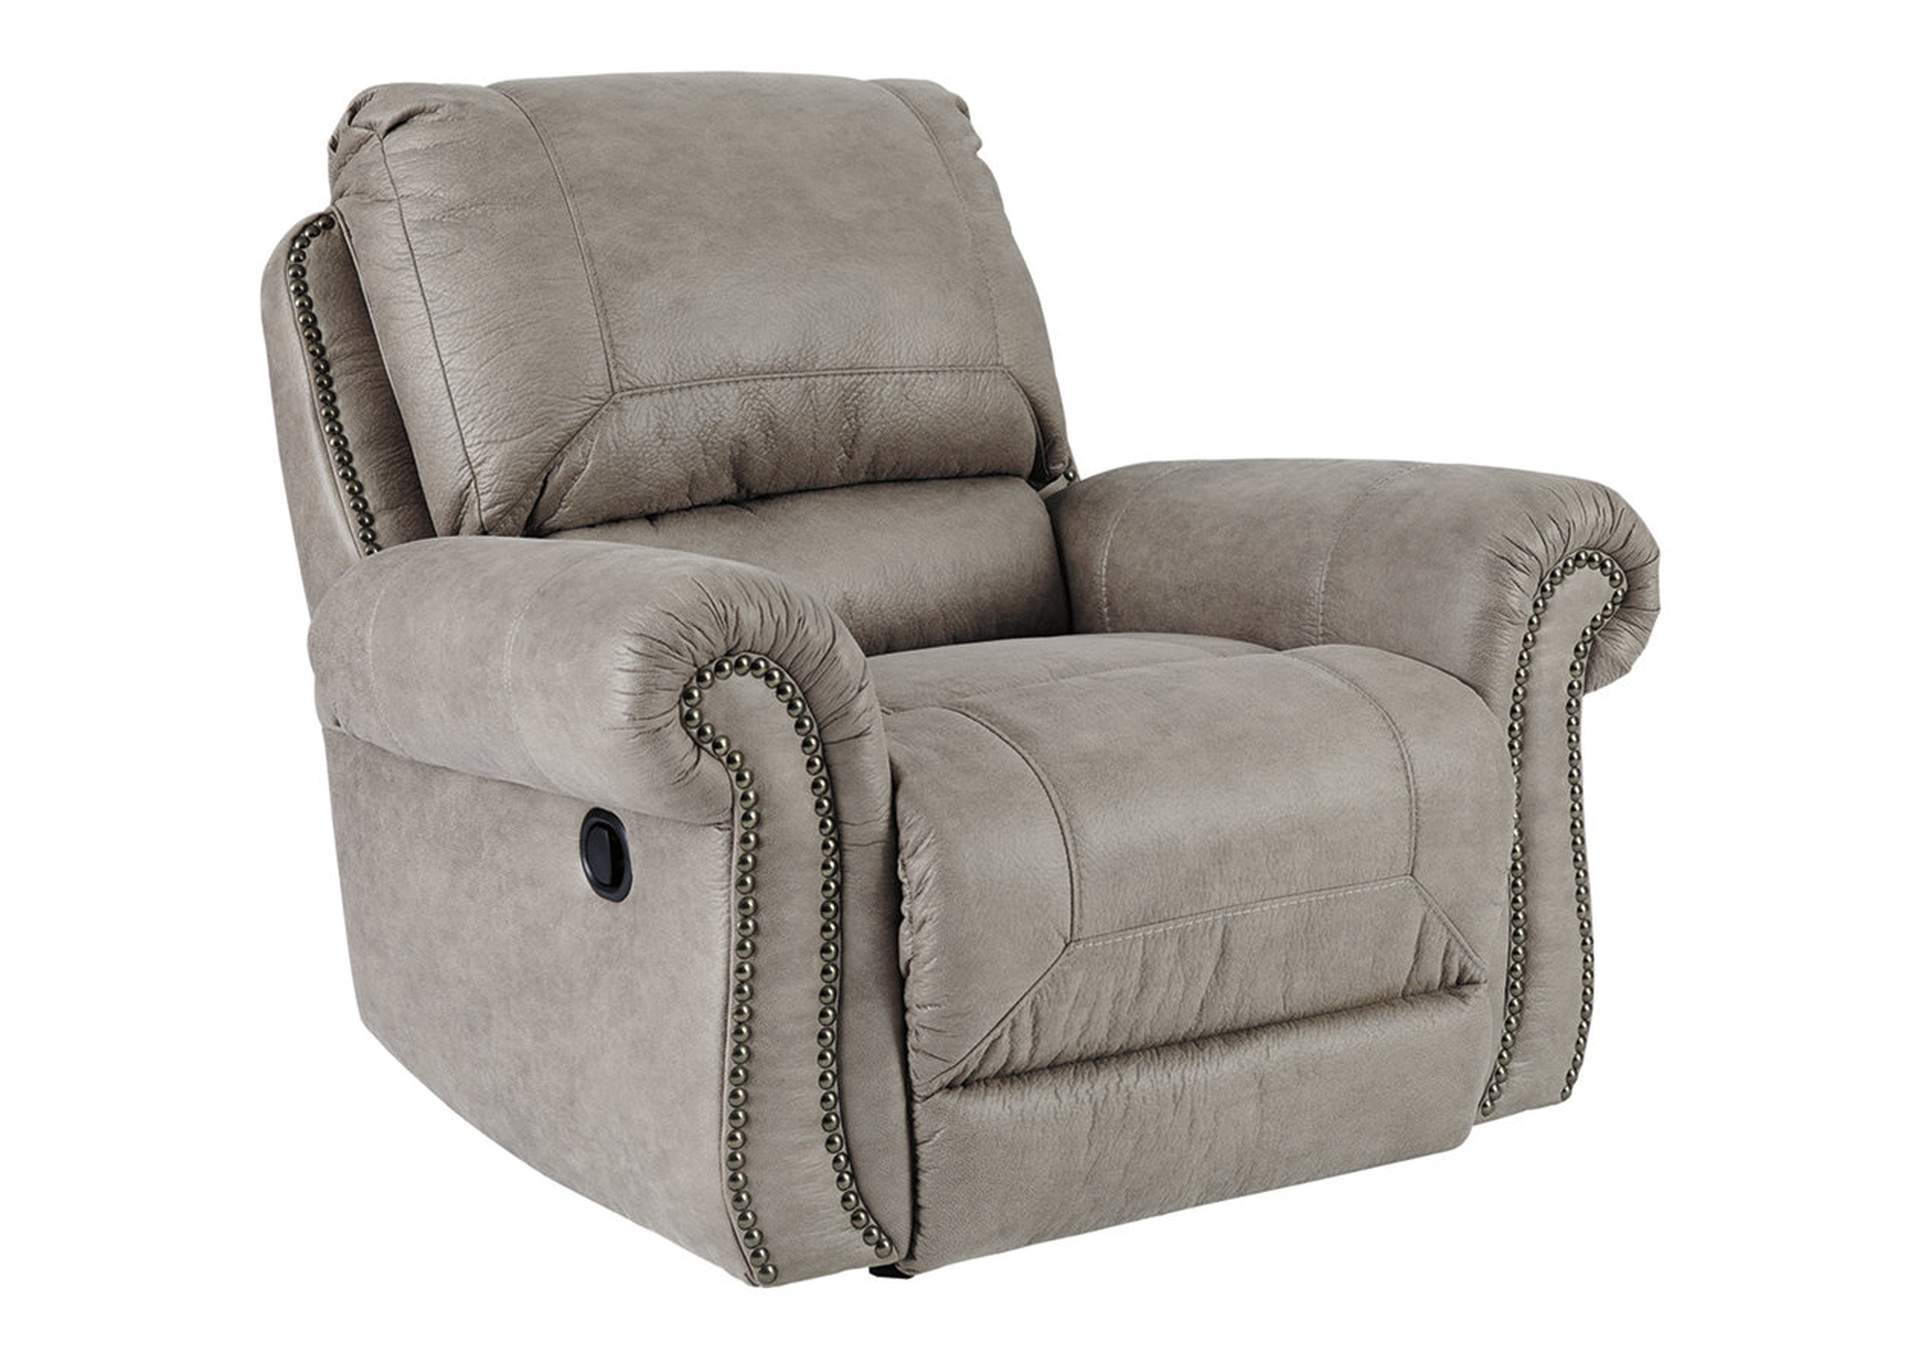 Olsberg Steel Rocker Recliner,Signature Design By Ashley